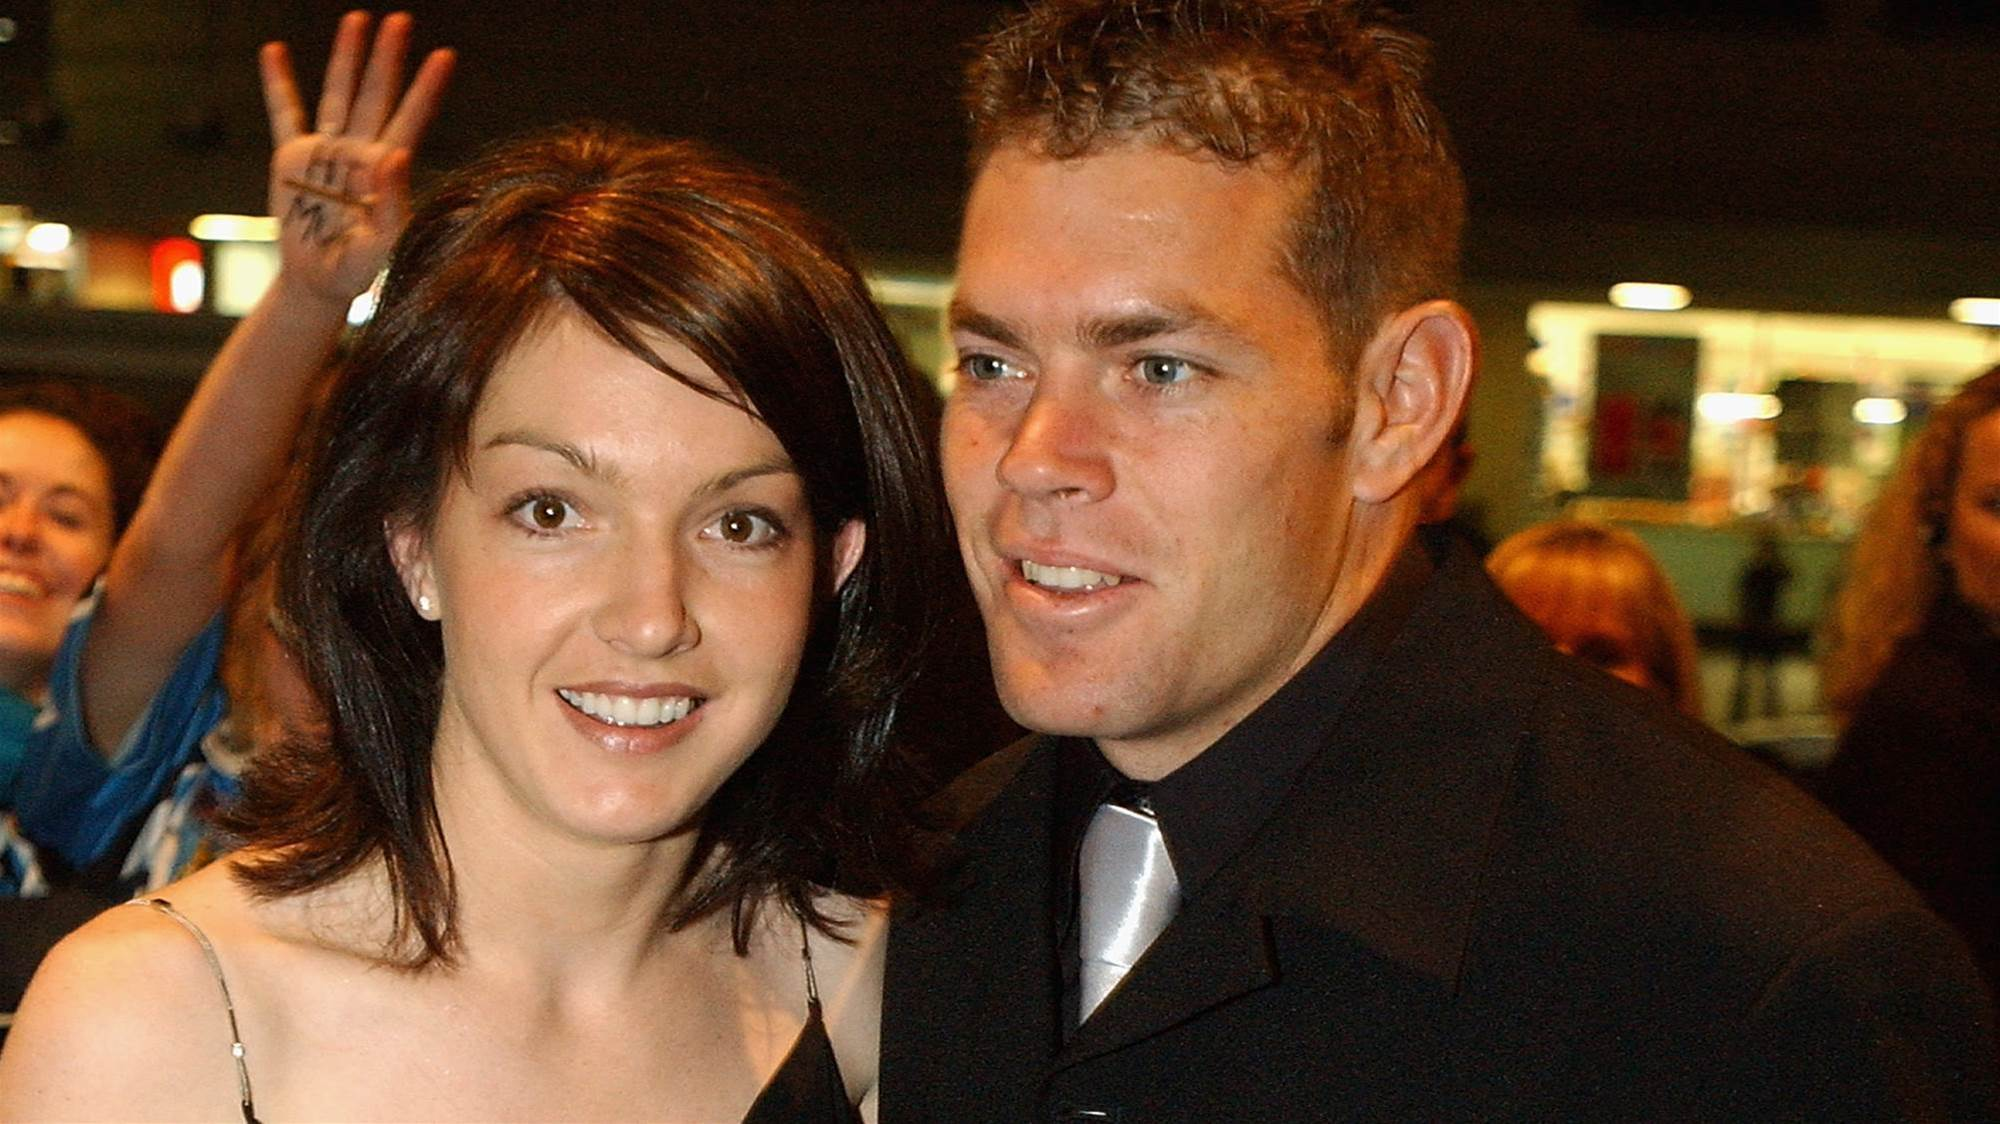 Rugby league mourns loss of Kimmorley's wife